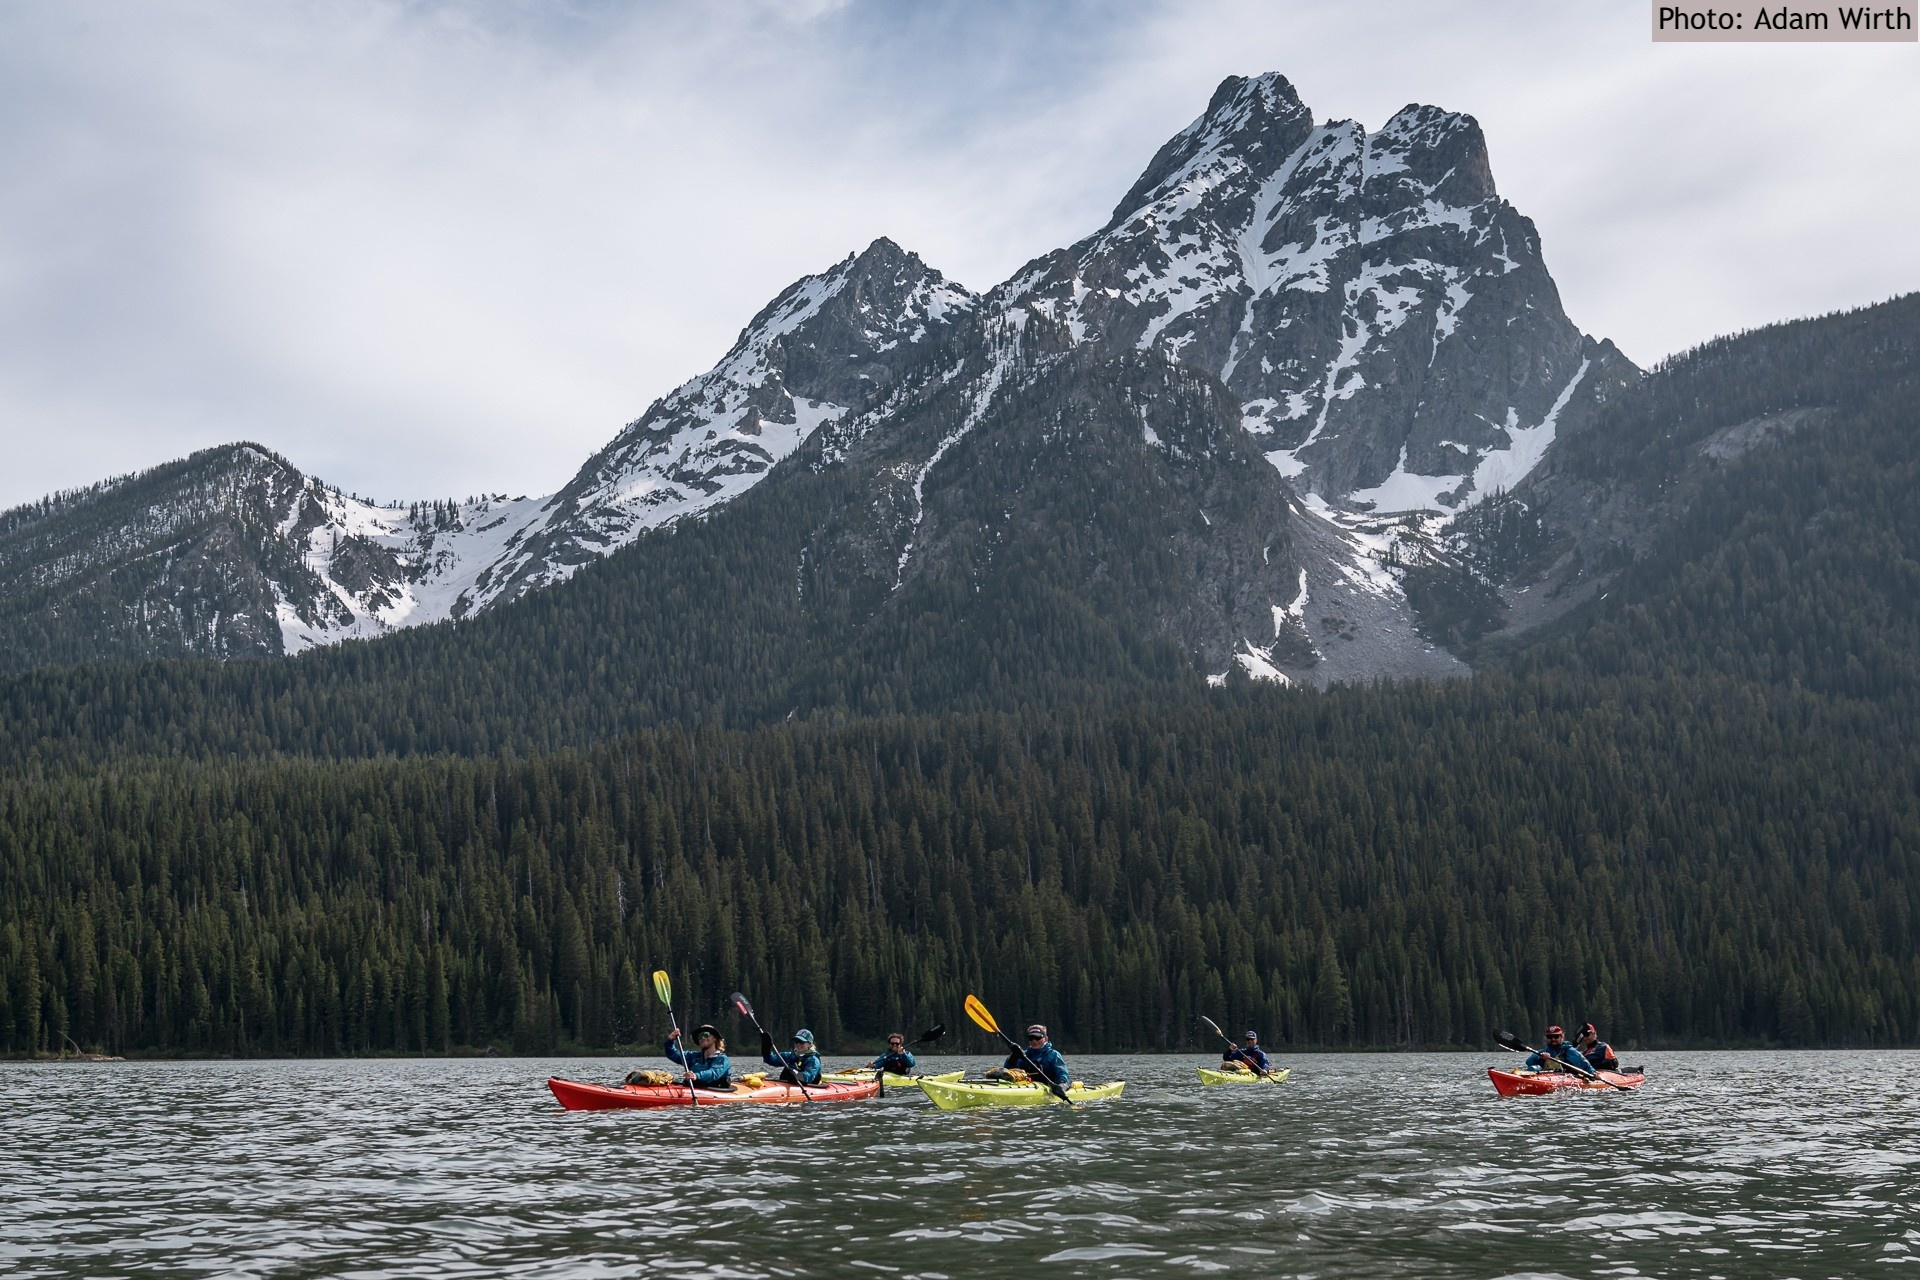 View of MT. Moran from Kayak